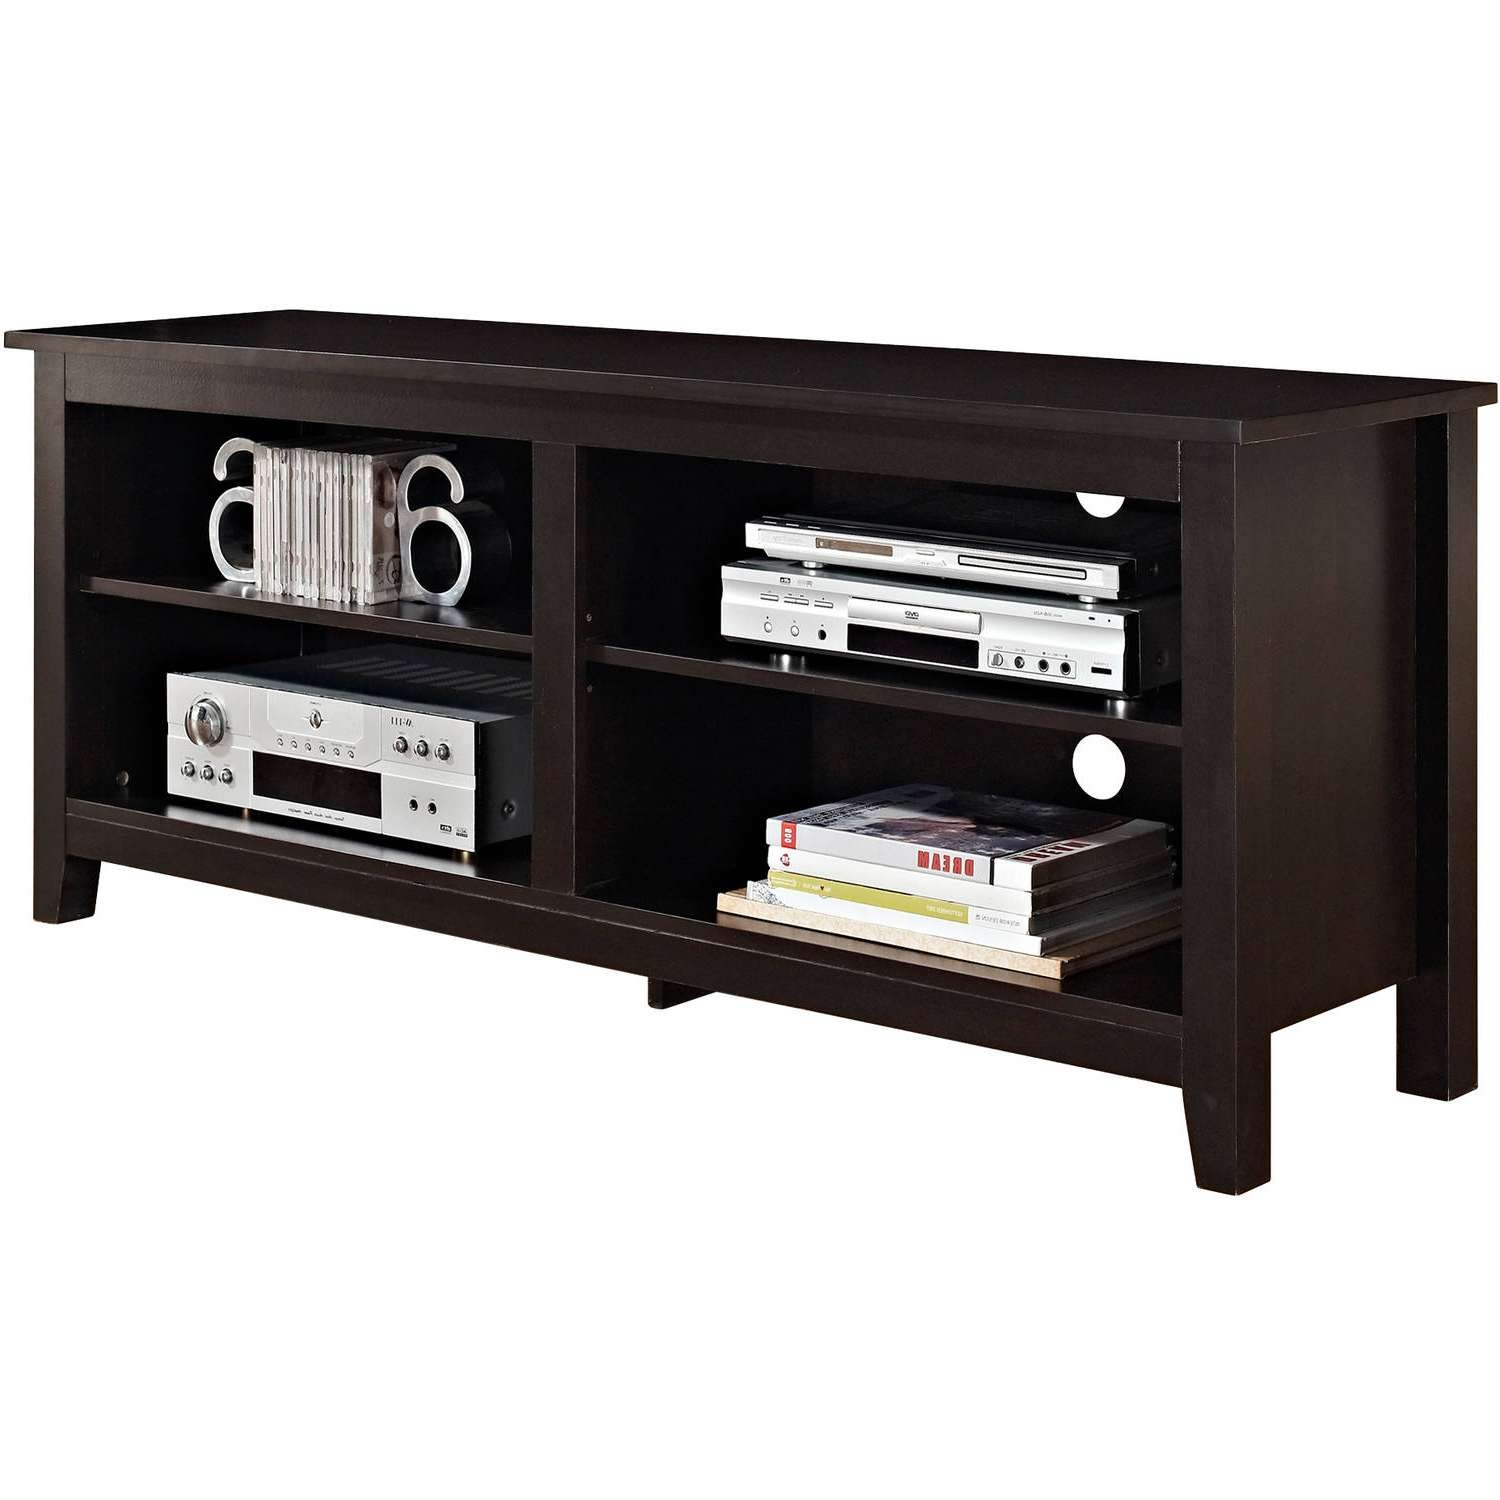 "Wood Tv Stand For Tvs Up To 60"", Espresso – Walmart Intended For Expresso Tv Stands (View 15 of 15)"